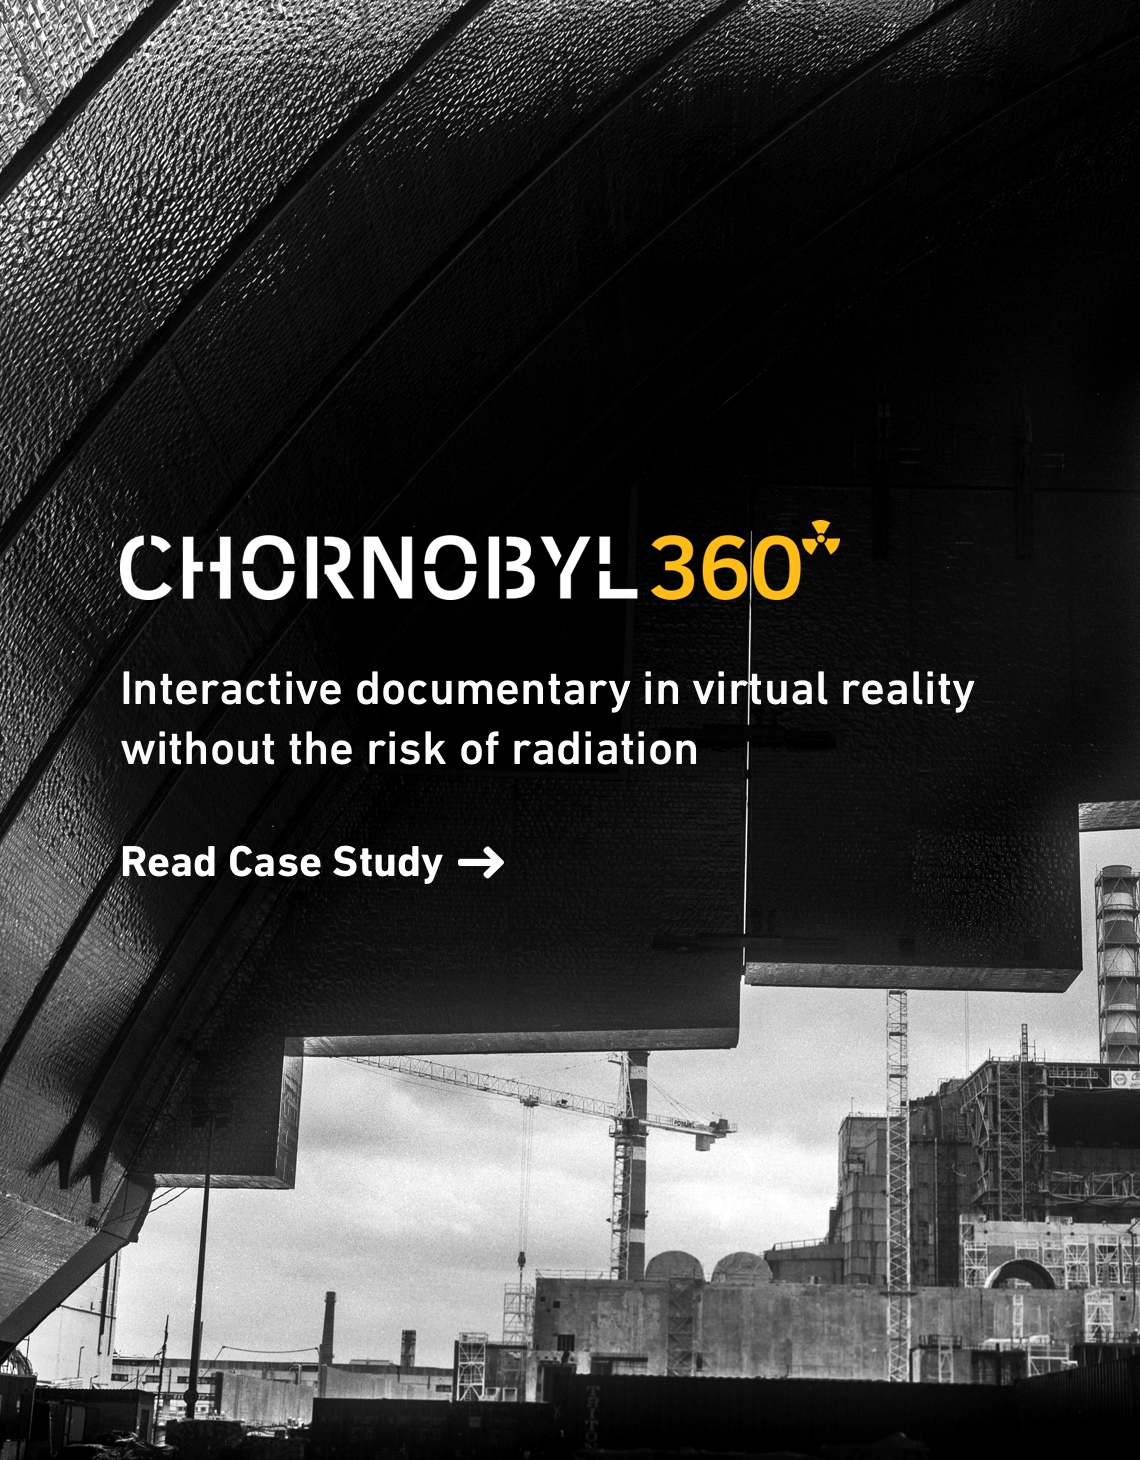 Chornobyl360 - interactive documentary in virtual reality